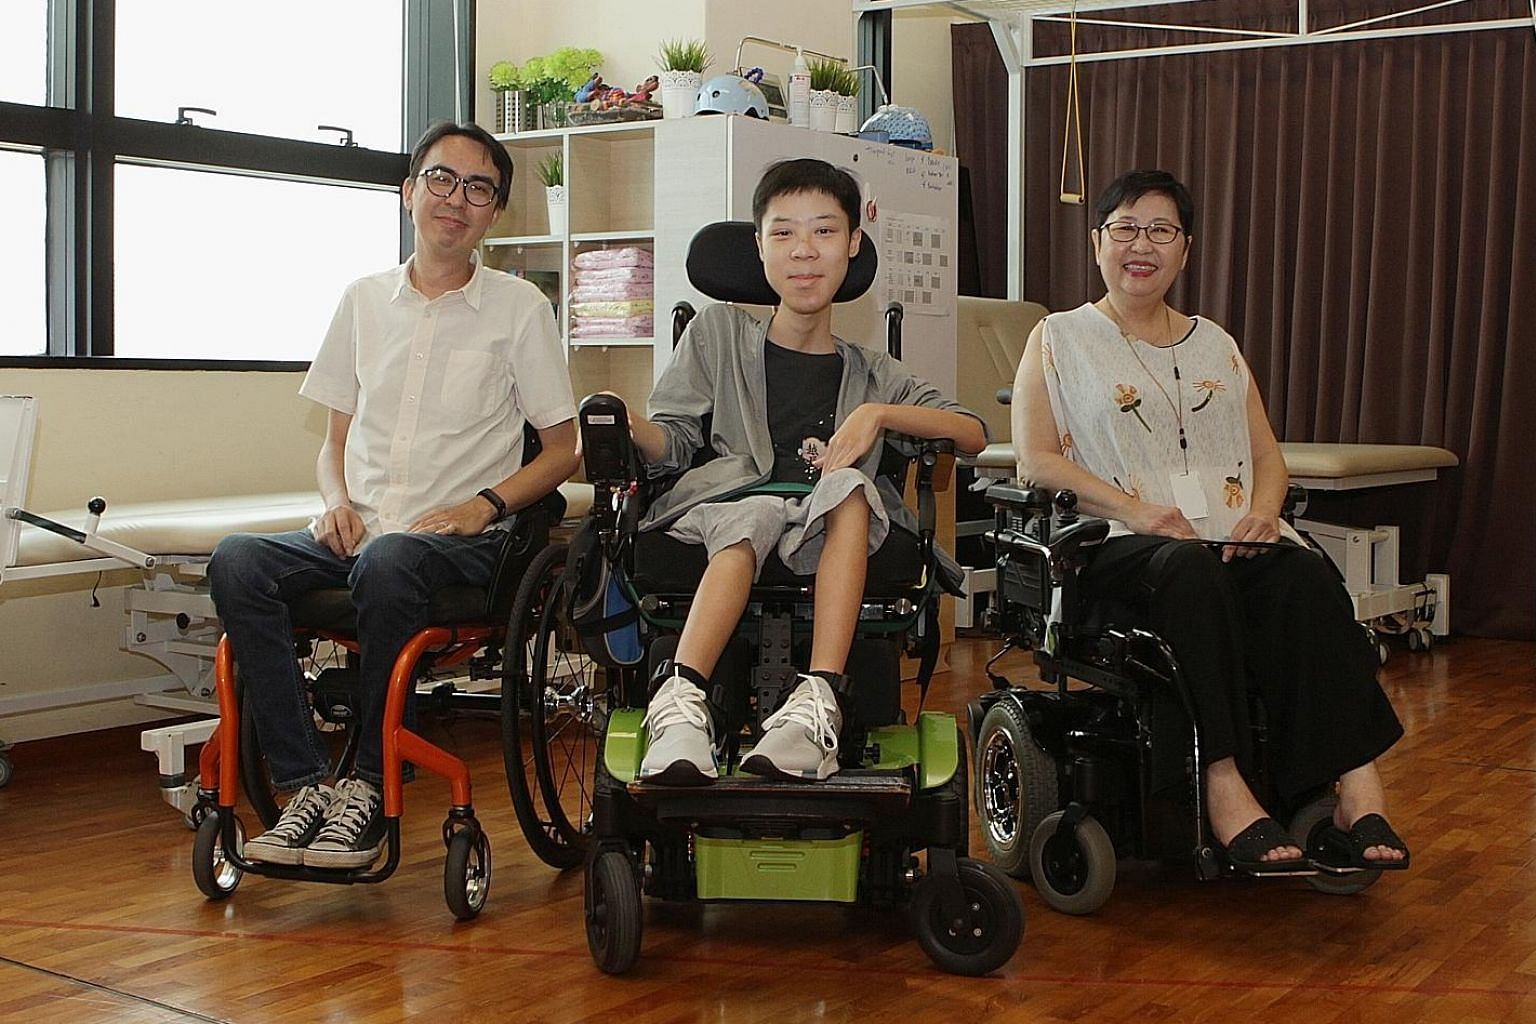 From left: Mr Alvin Seah, 39, Mr Desmond Lam, 19, and Ms Sherena Loh, 59, who all have a form of muscular dystrophy, at the Muscular Dystrophy Association (Singapore). The centre needs more funds to continue running and expanding its programmes, whic